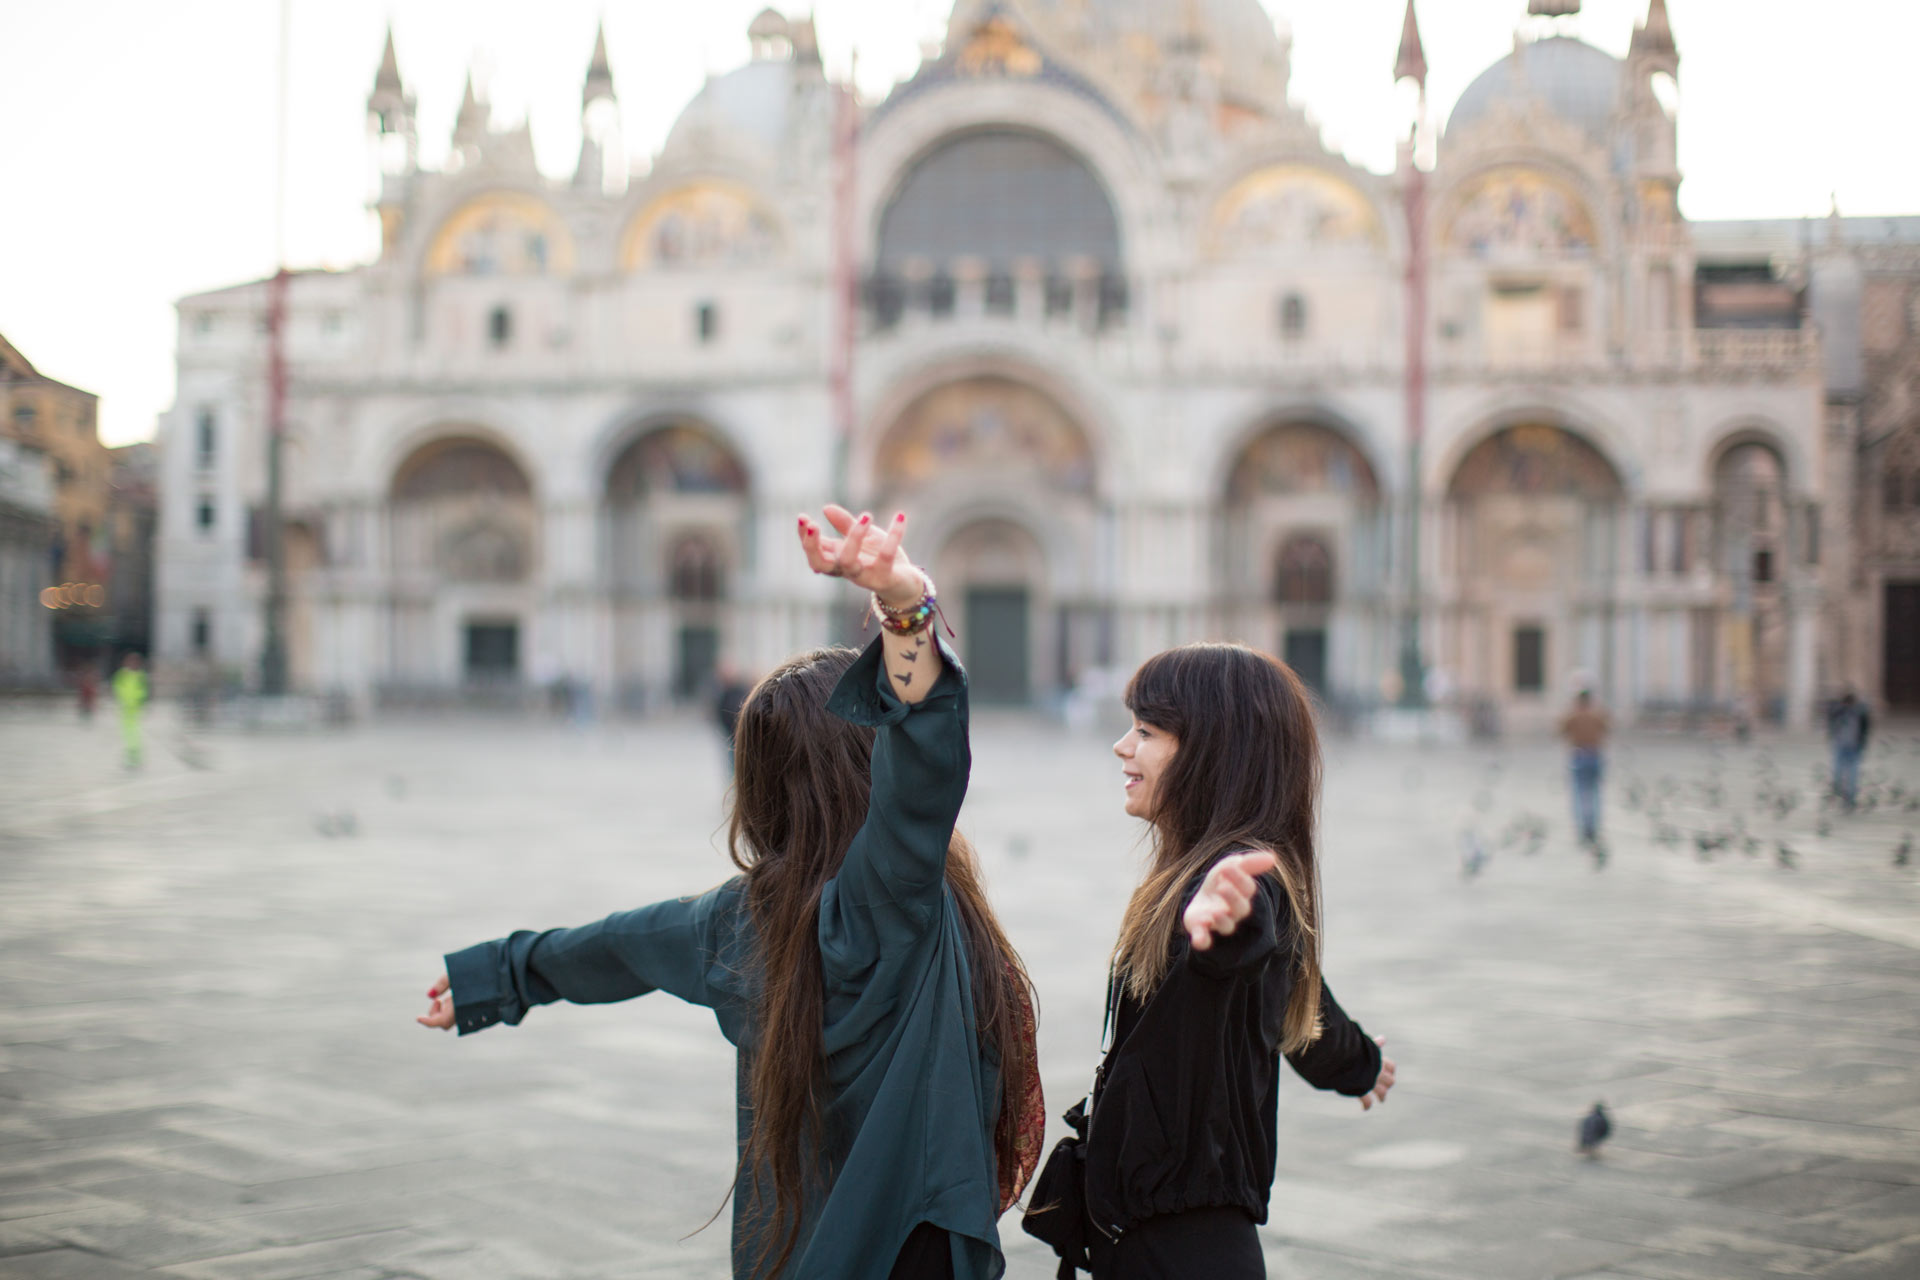 Ashley-Meagan-portrait-photo-shooting-sunrise-piazza-san-marco--basilica-Venezia-Venice-happiness